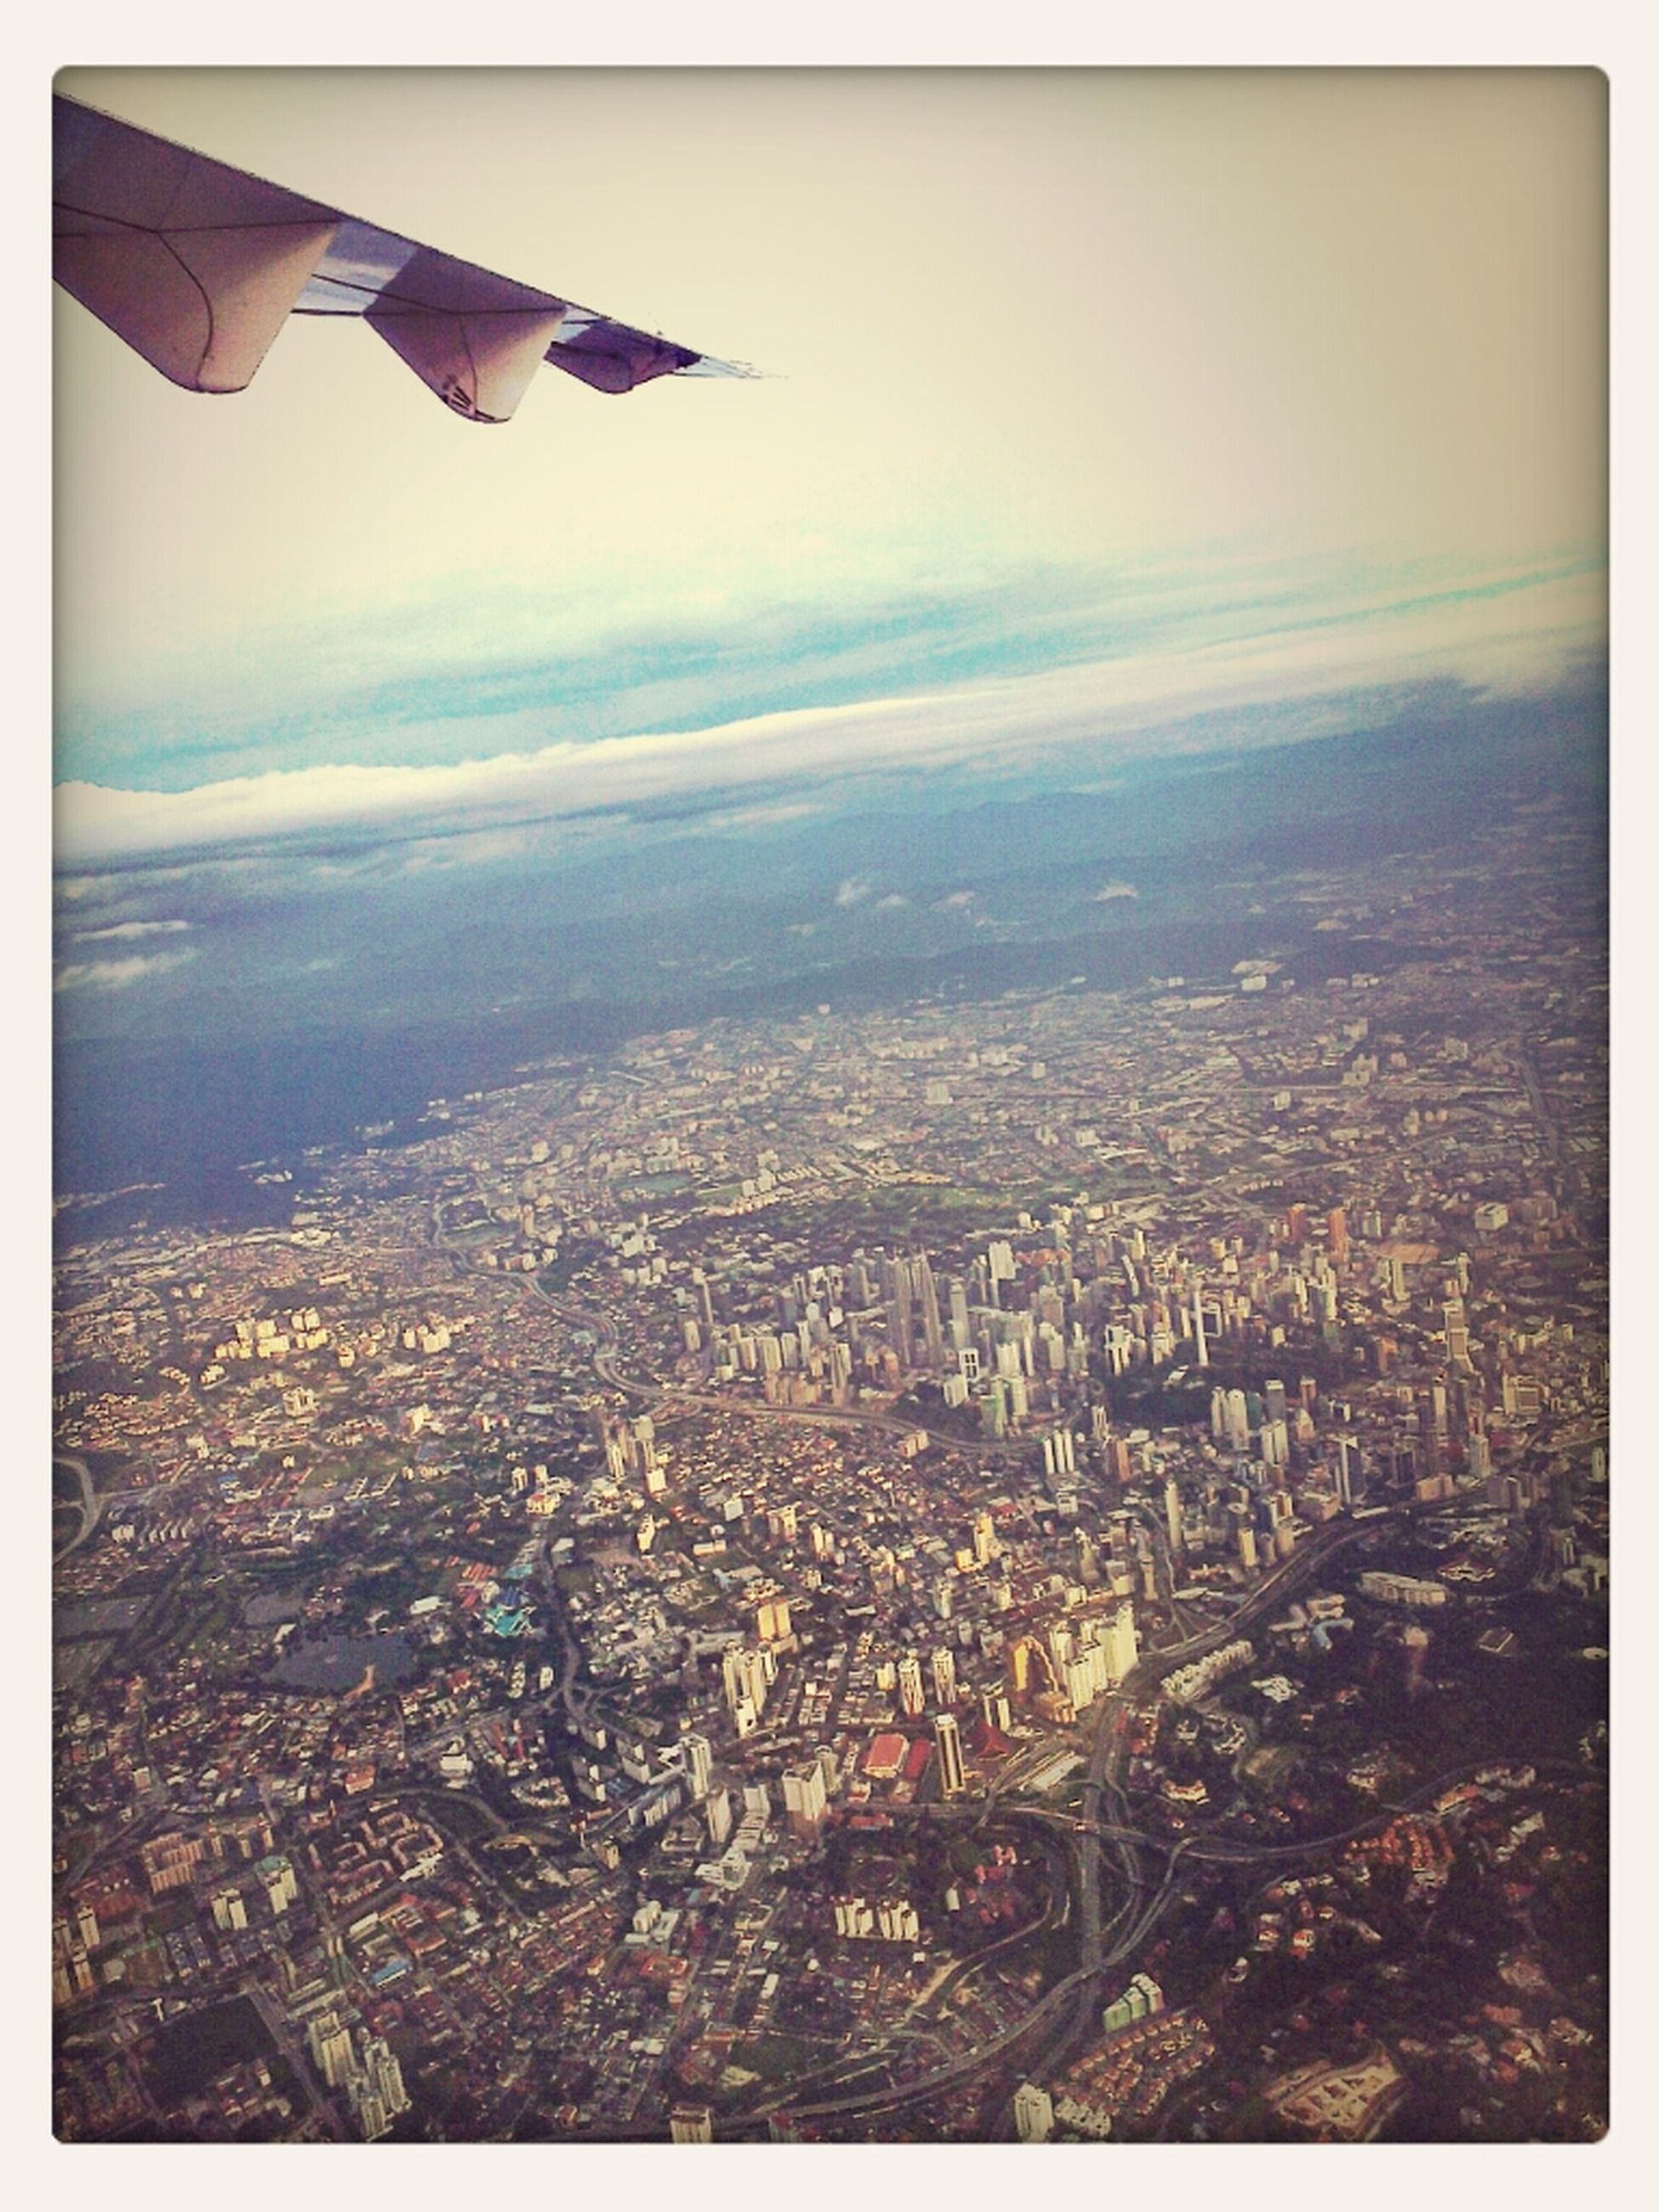 flying, aerial view, airplane, aircraft wing, air vehicle, sky, cityscape, mid-air, cloud - sky, city, part of, scenics, nature, beauty in nature, building exterior, outdoors, no people, landscape, cloud, blue